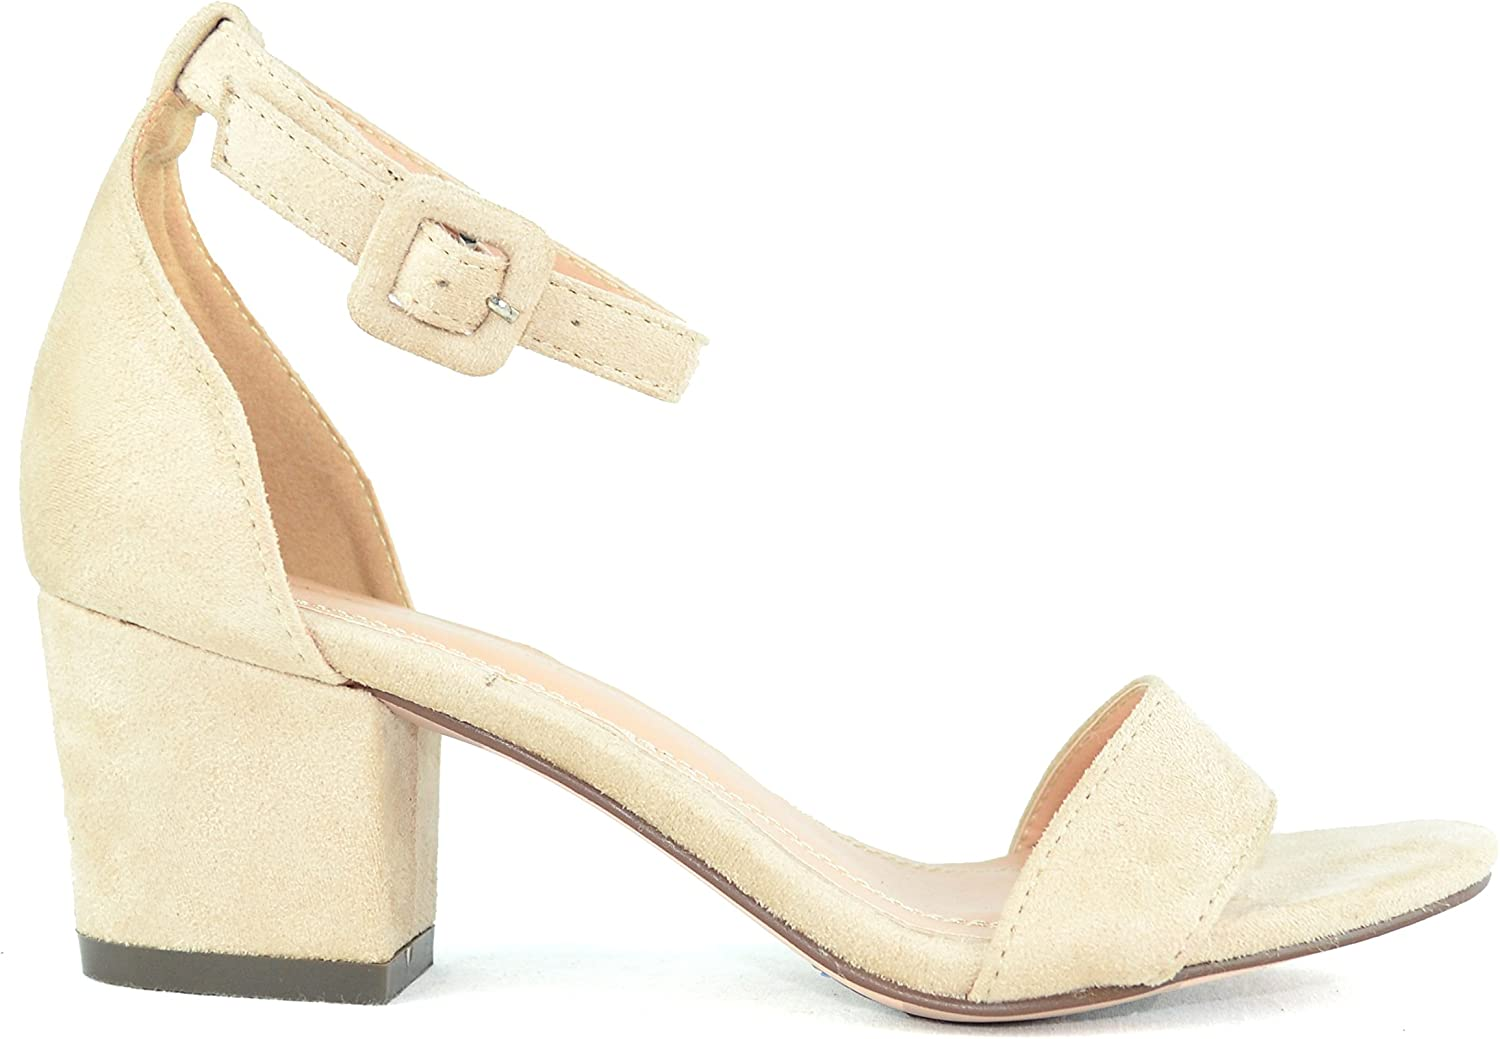 Chase & Chloe Venus-4 Ankle Strap Women's Low Heeled Sandal